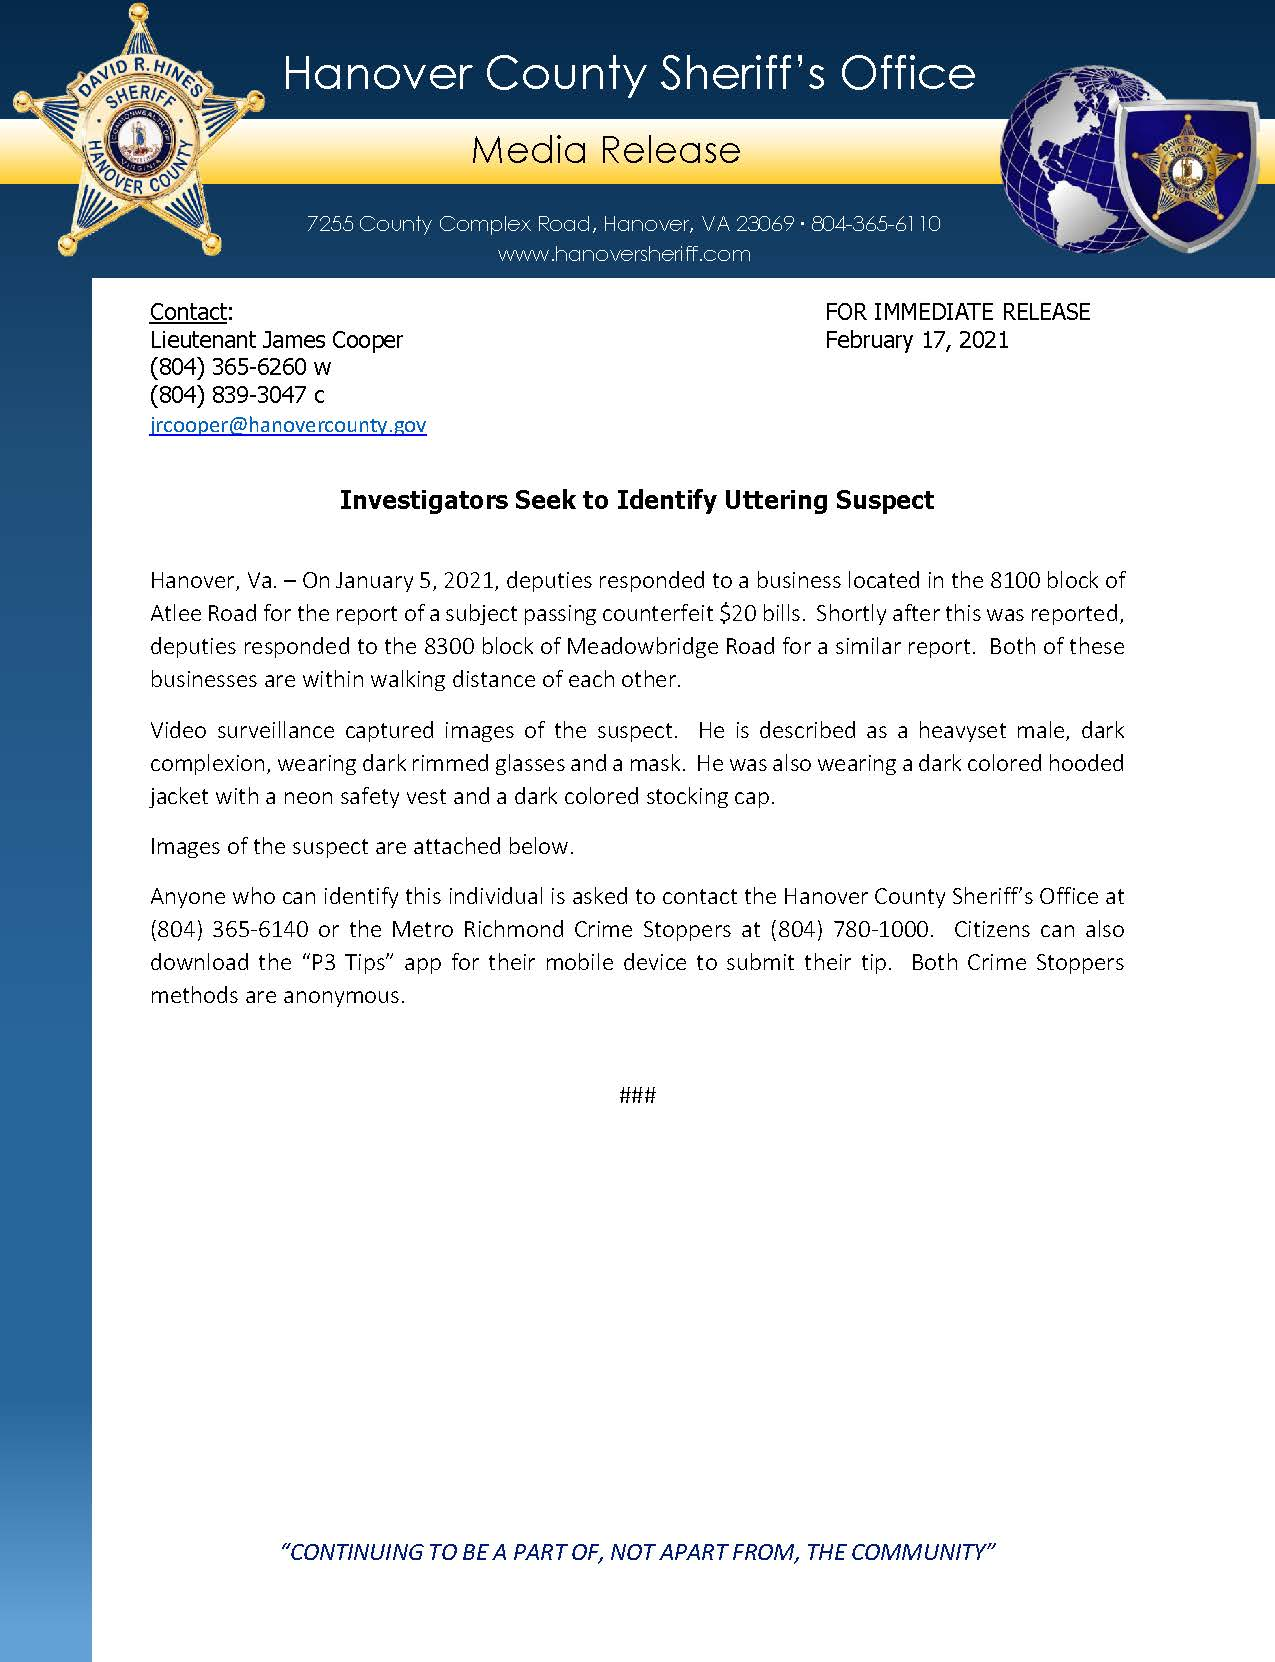 HCSO Media Release - Investigators Seek to Identify Uttering Suspect 2.17.21 Page 1